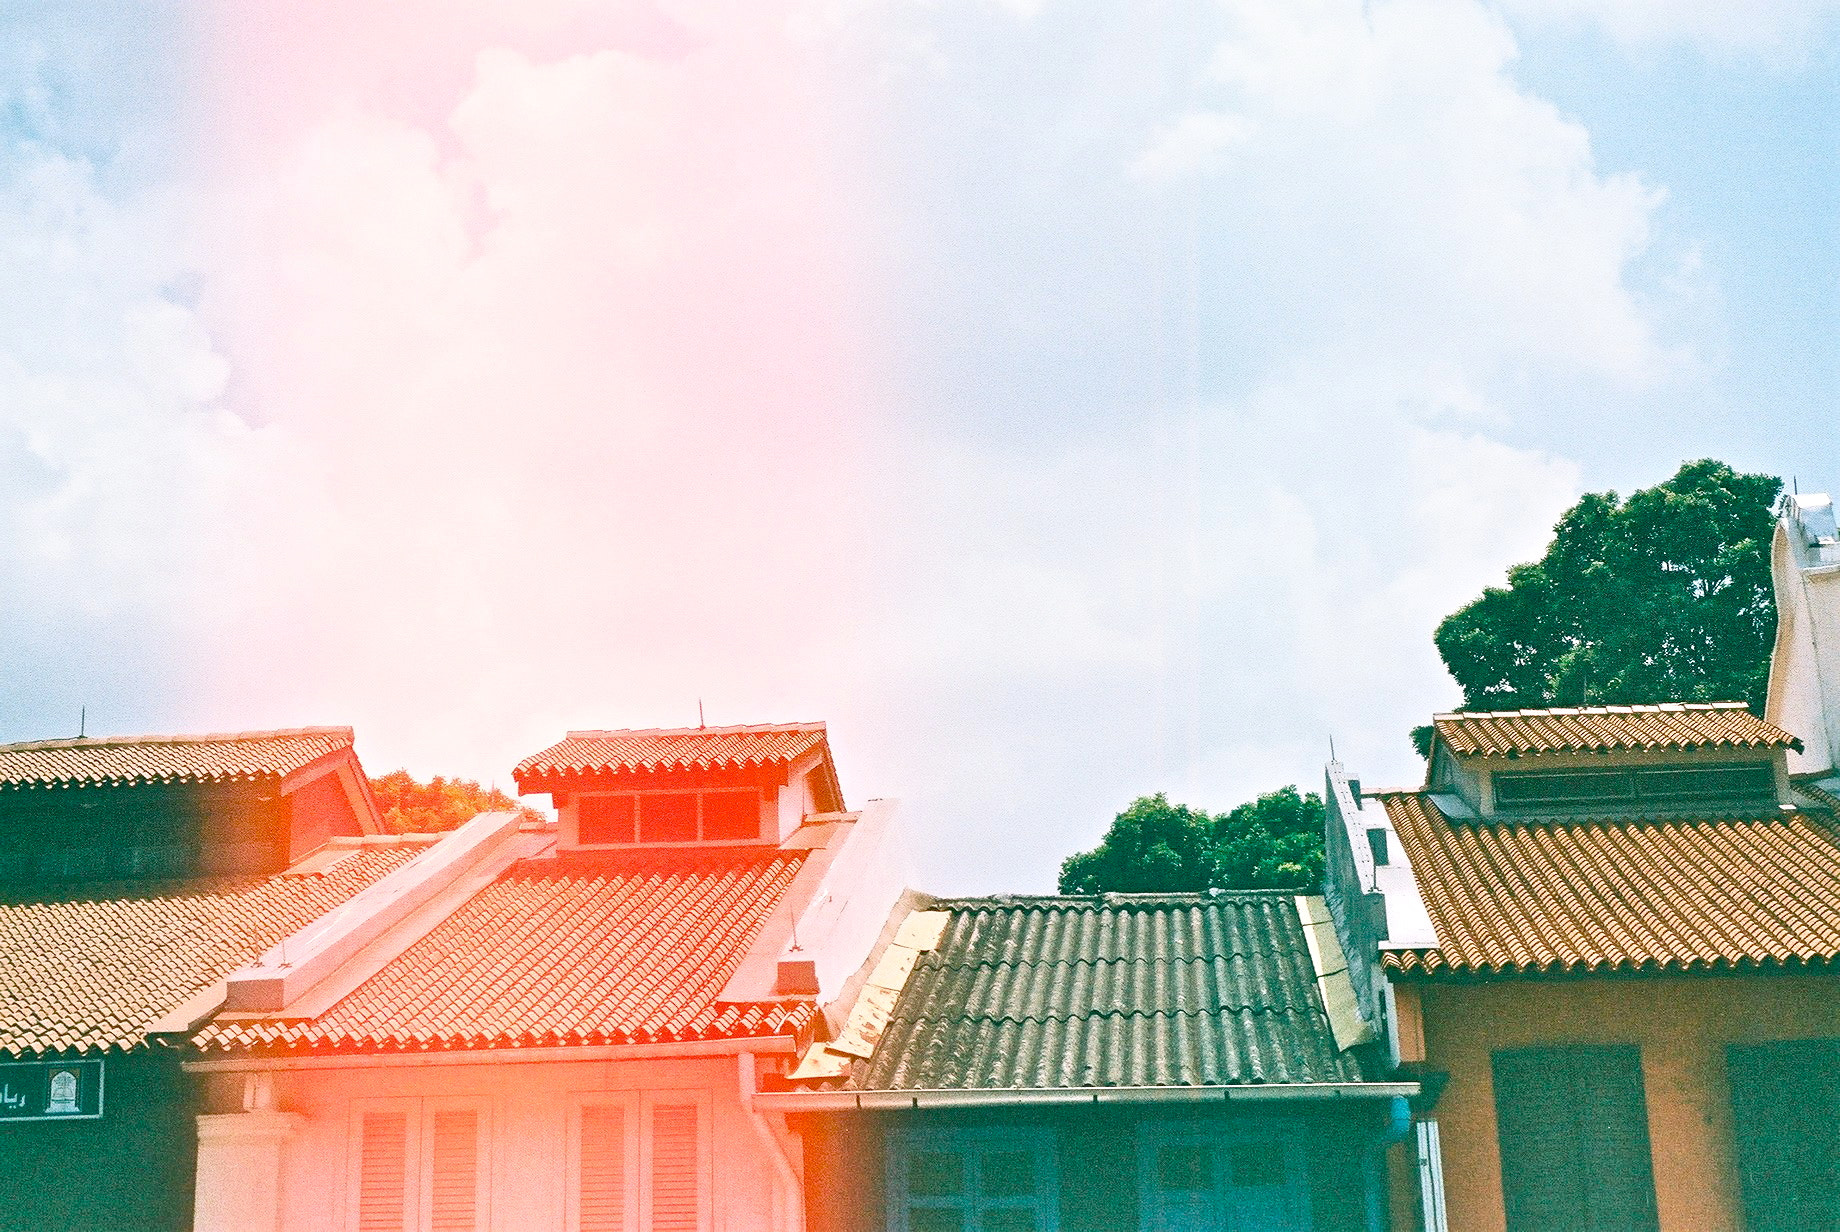 Photograph Roofs and Roofs by Addie Chong on 500px